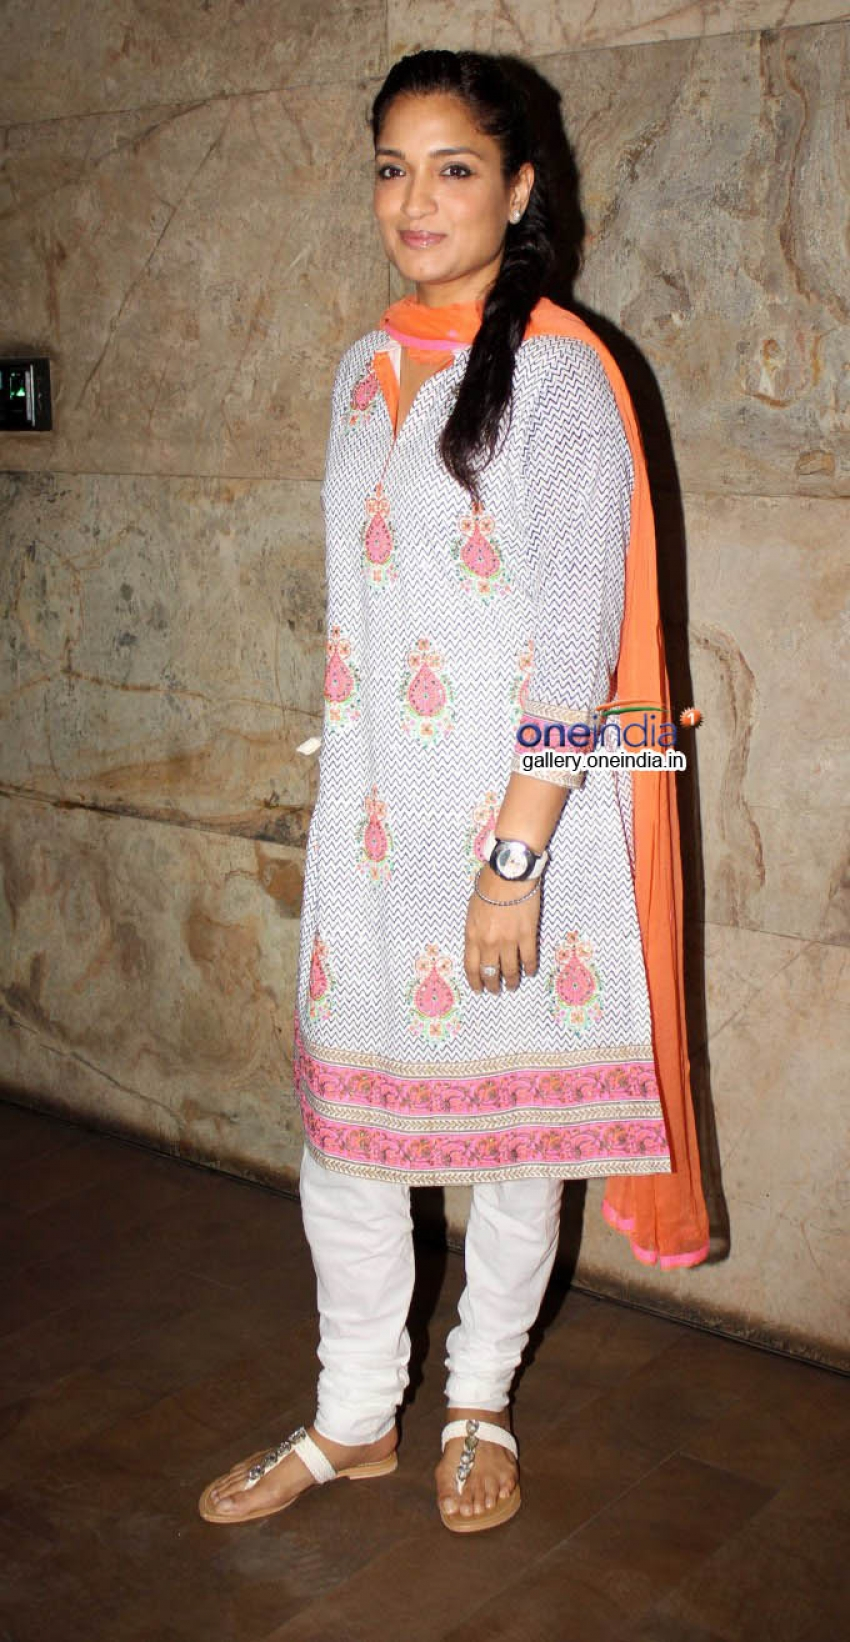 Revolver Rani film special screening Photos